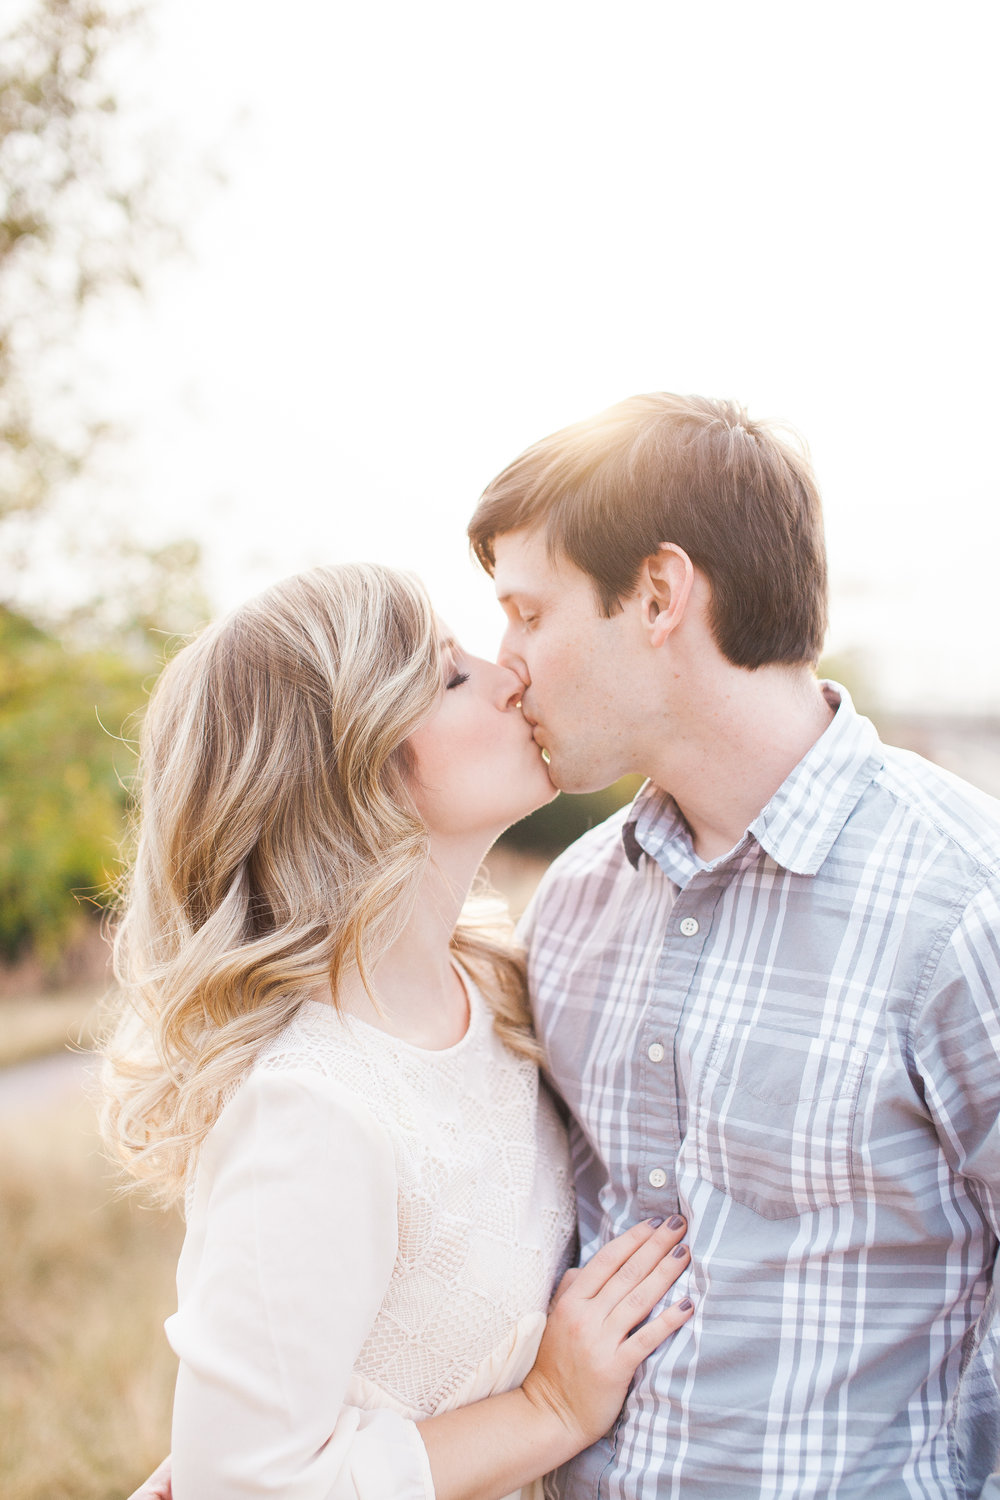 Matty-Drollette-Engagments-Birmingham-Montgomery-Alabama-Photographer-100.jpg